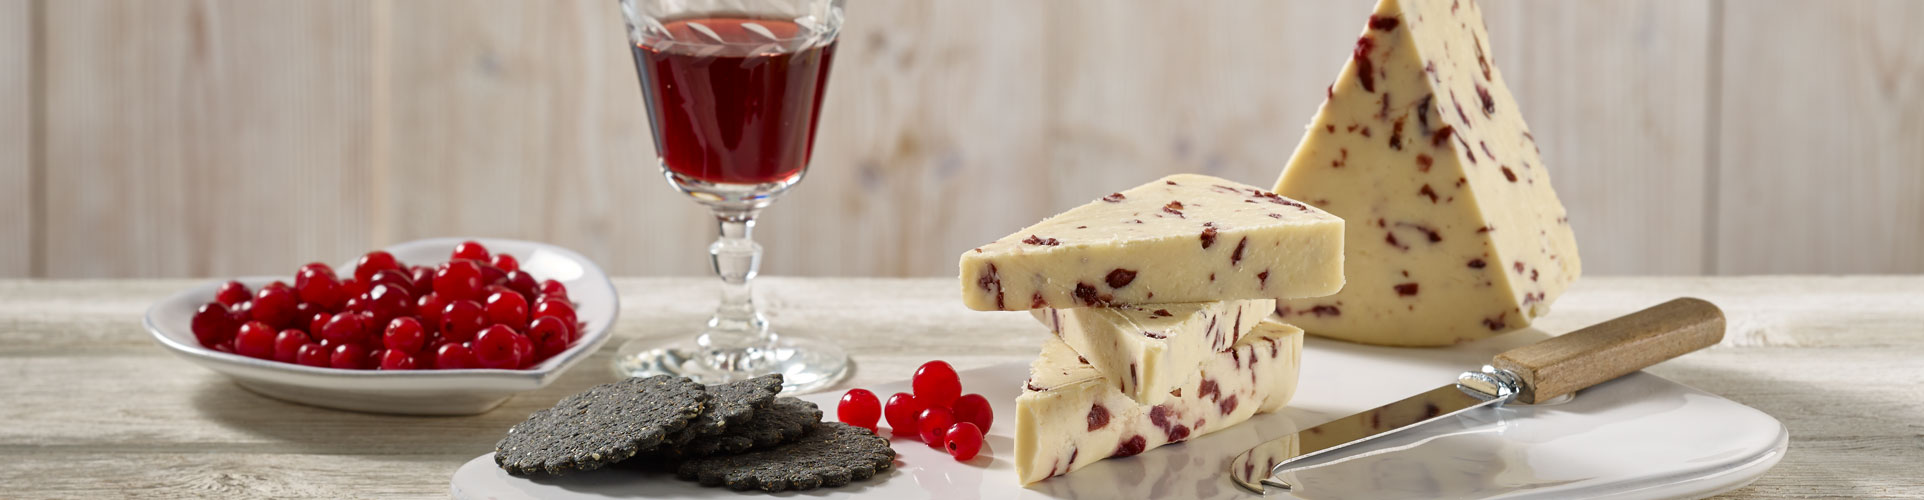 Coombe Castle International Sweet Blends Wensleydale with Cranberries